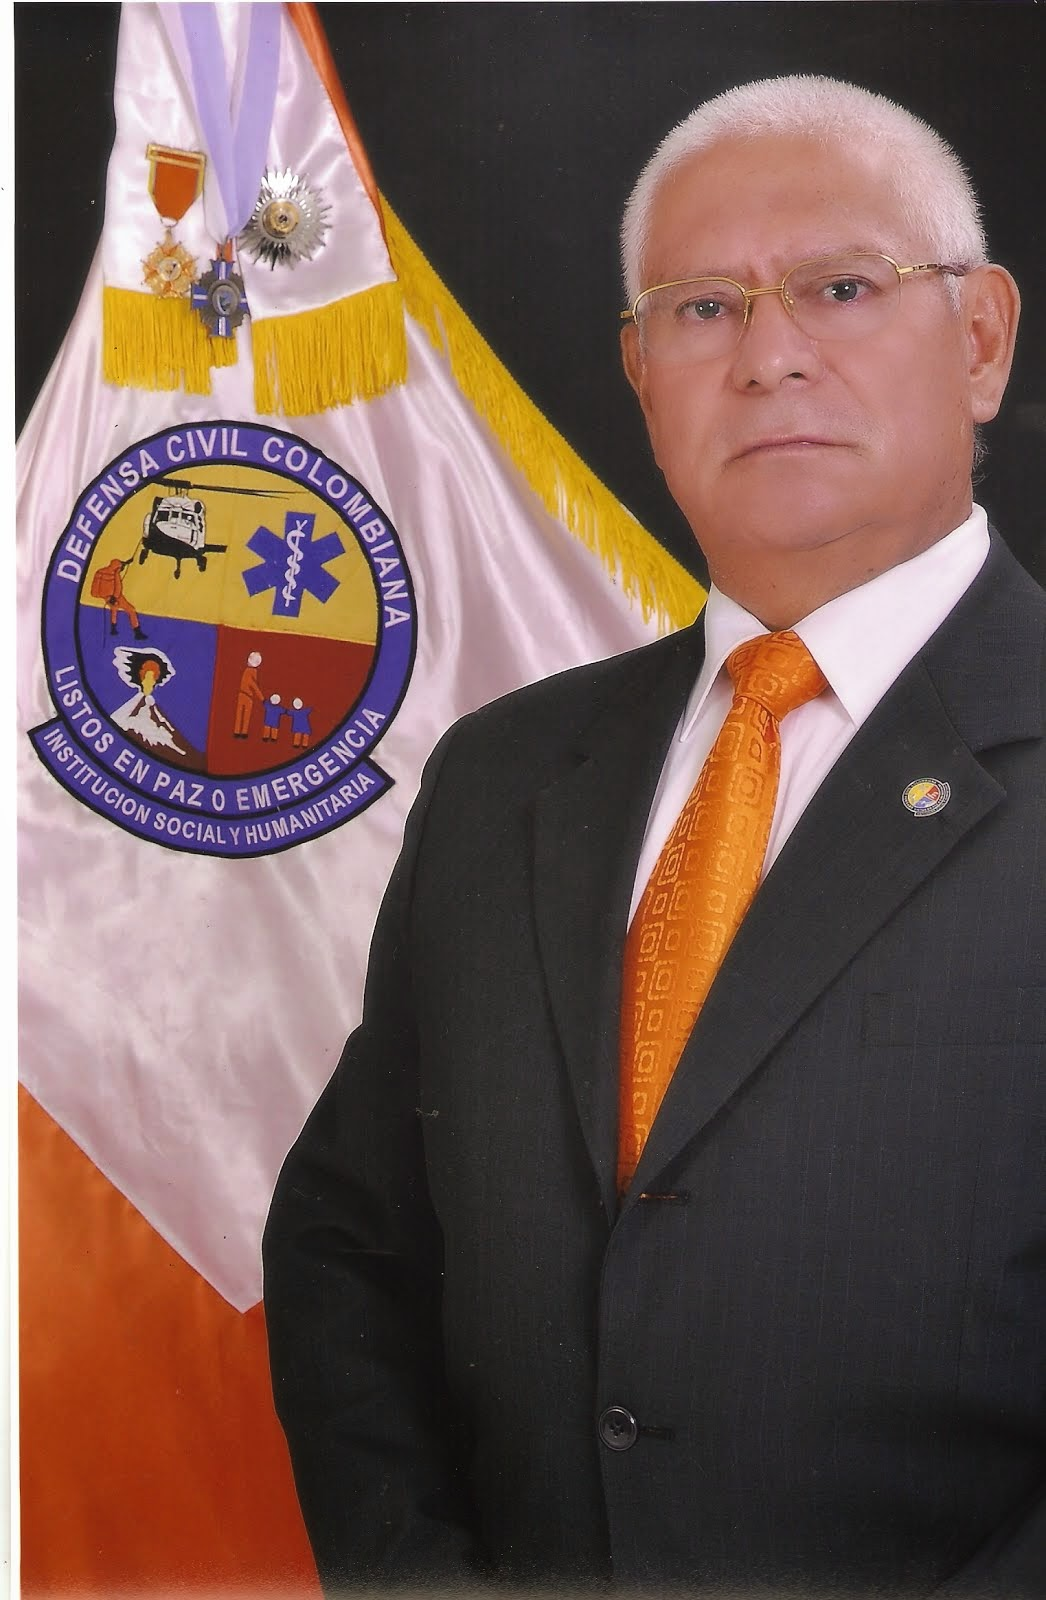 Director Seccional Defensa Civil